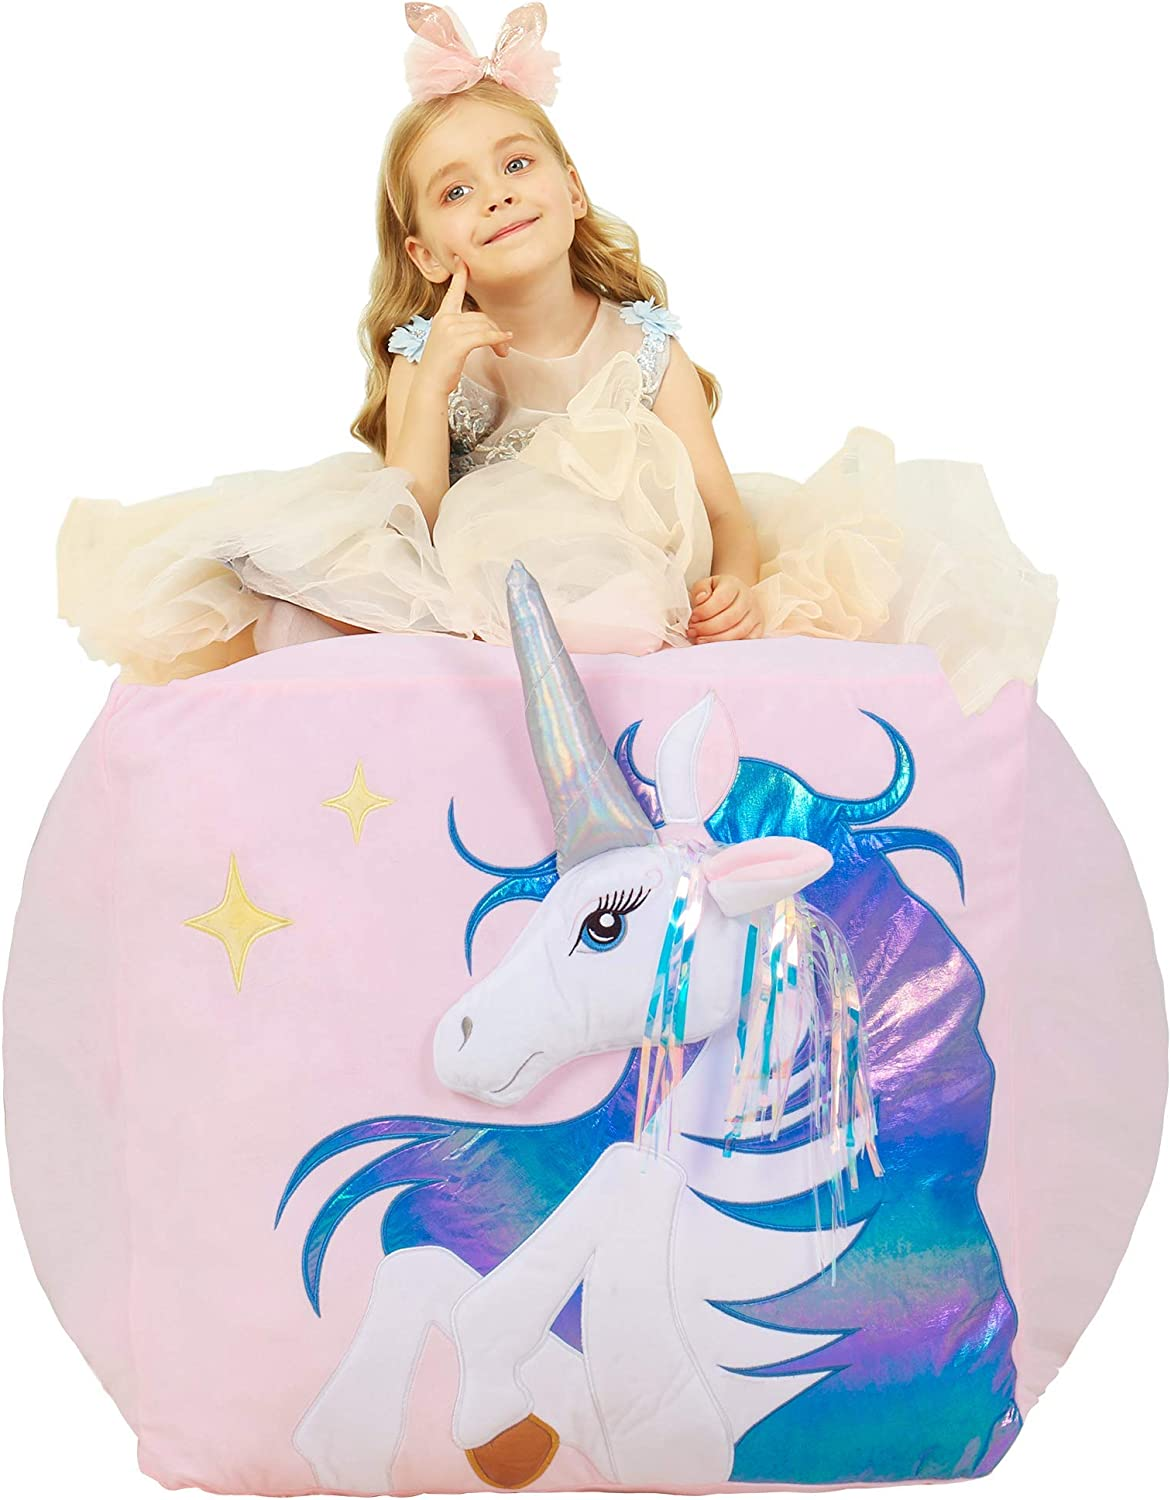 "Anzitinlan Unicorn Stuffed Animal Storage Bean Bag Chair, Kids Bean Bag Chair Girls, Baby Fleece Fabric Super Soft, Covers Only, 22""x24"" Colorful Horse"